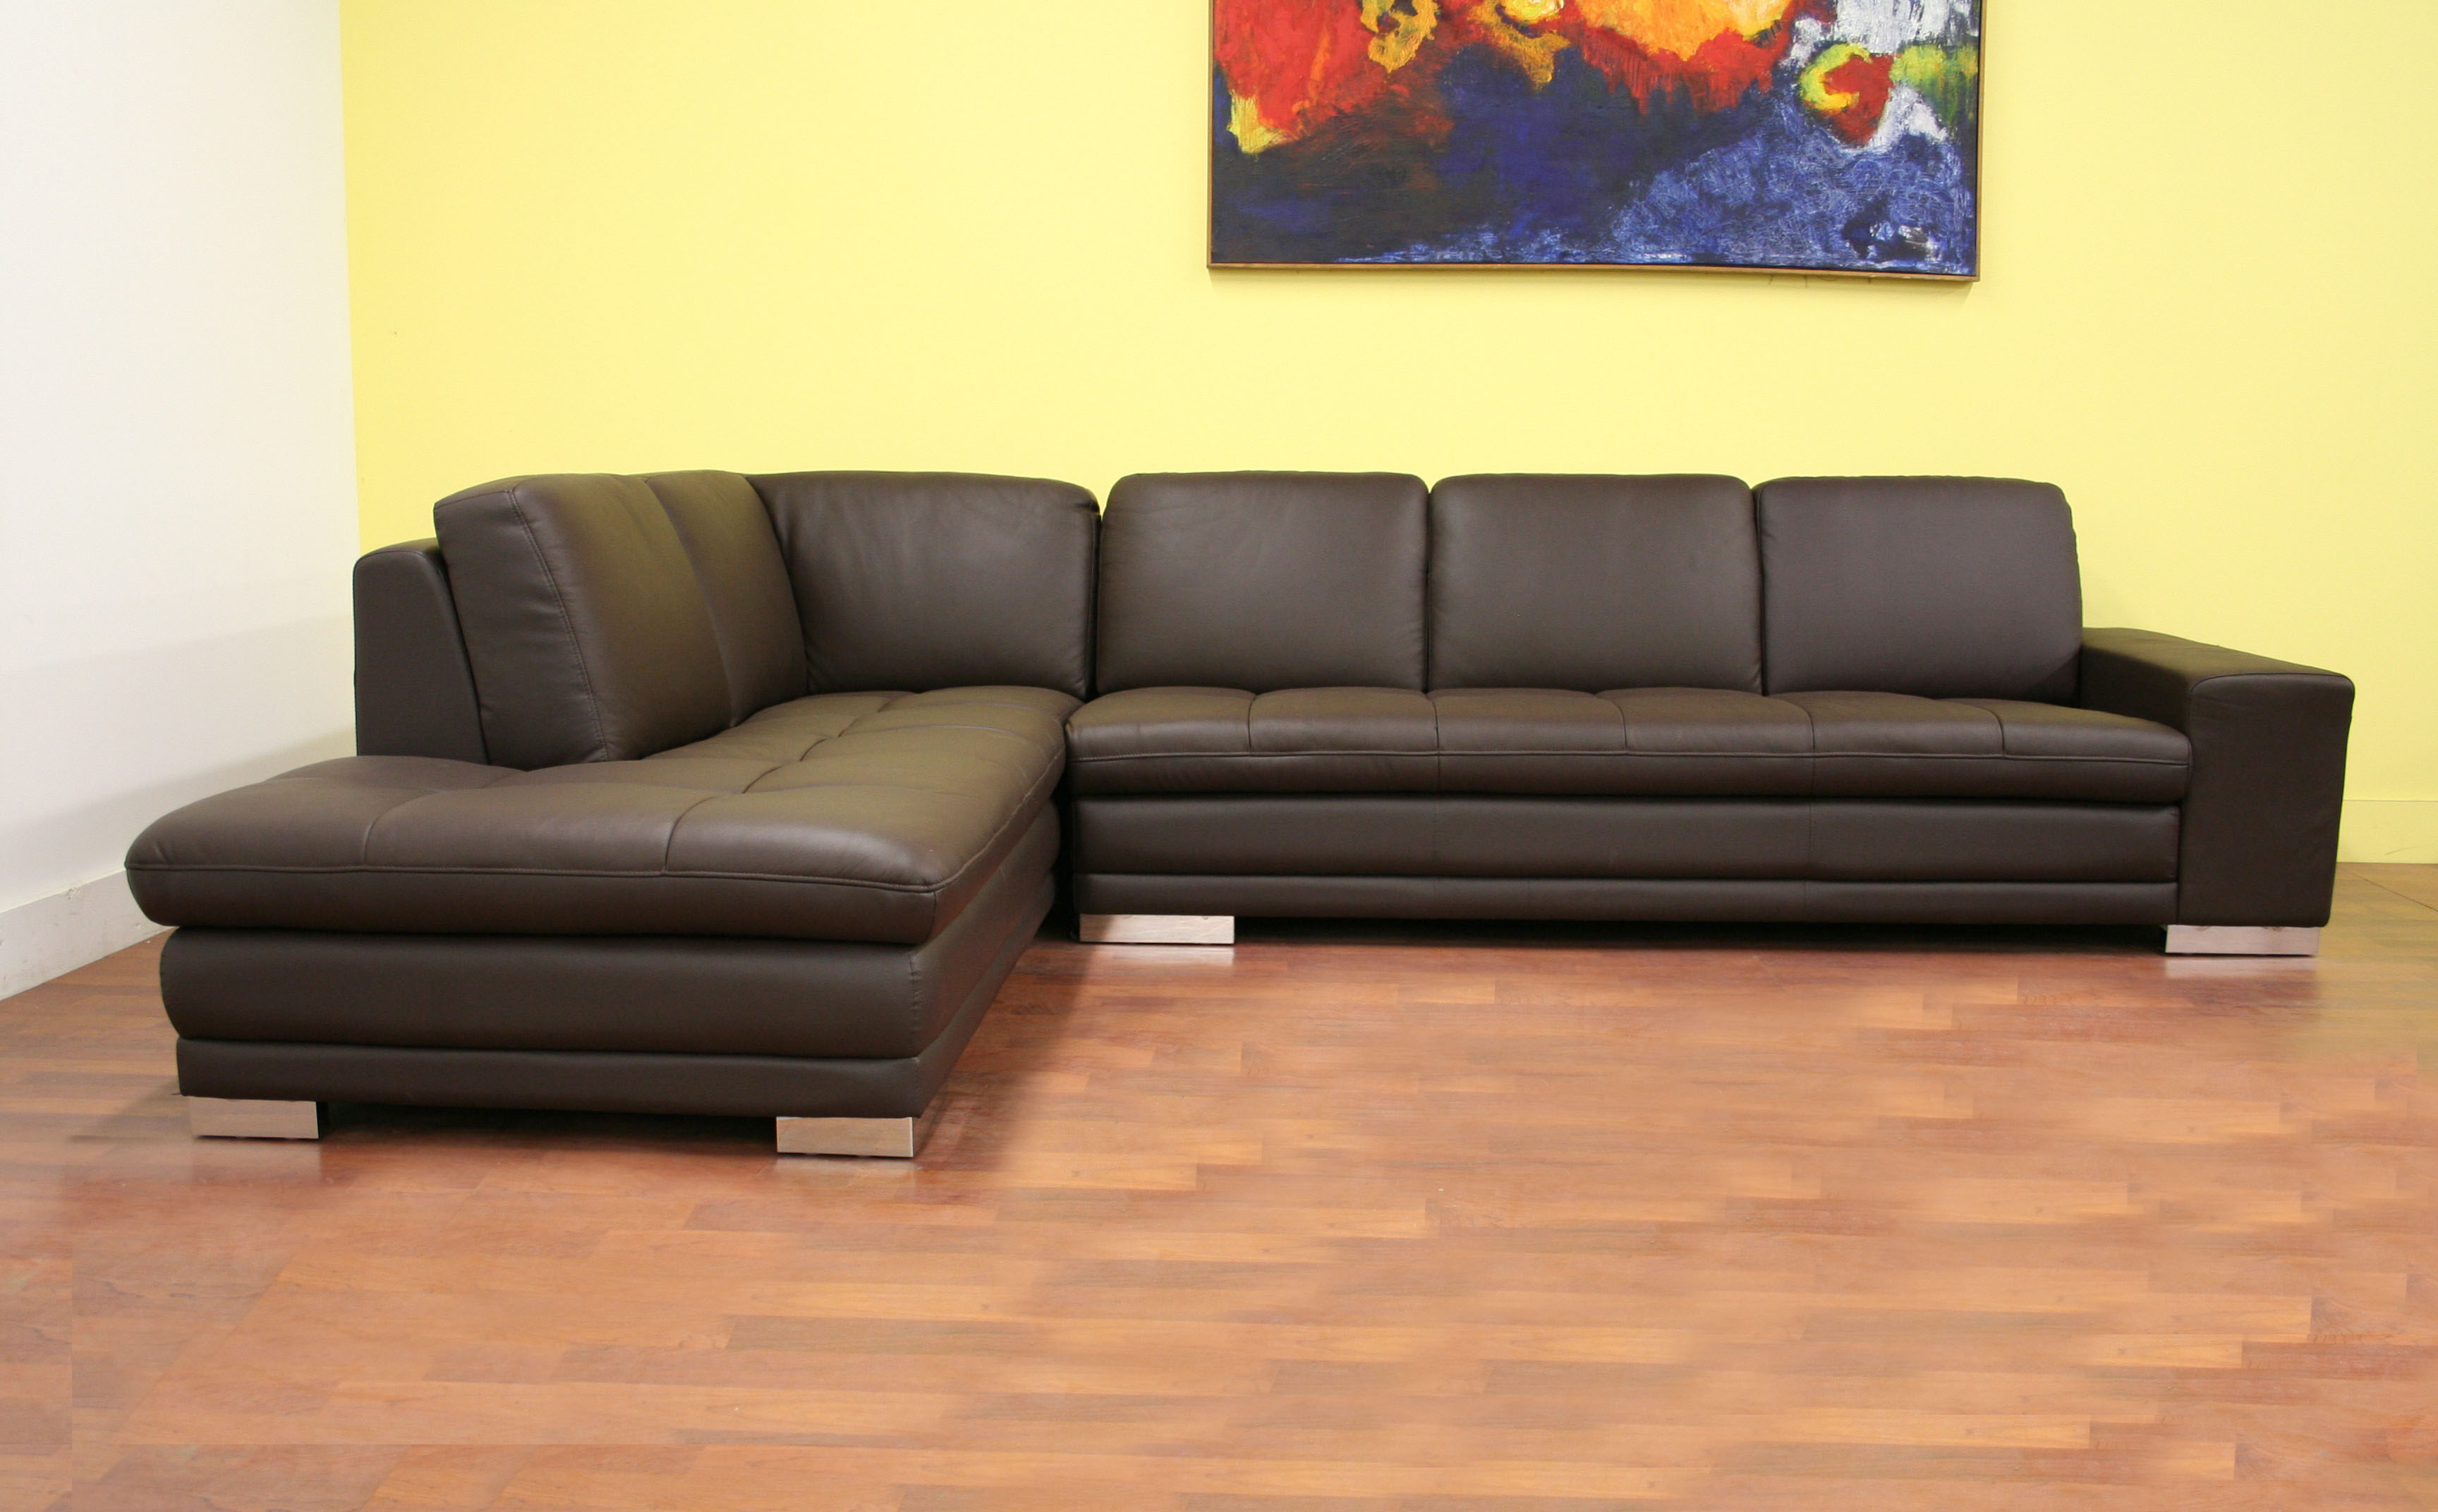 Baxton+Studio+Callidora+Dark+Brown+Leather-Leather+Match+Sofa+Sectional+Reverse-DEBAdoTELL